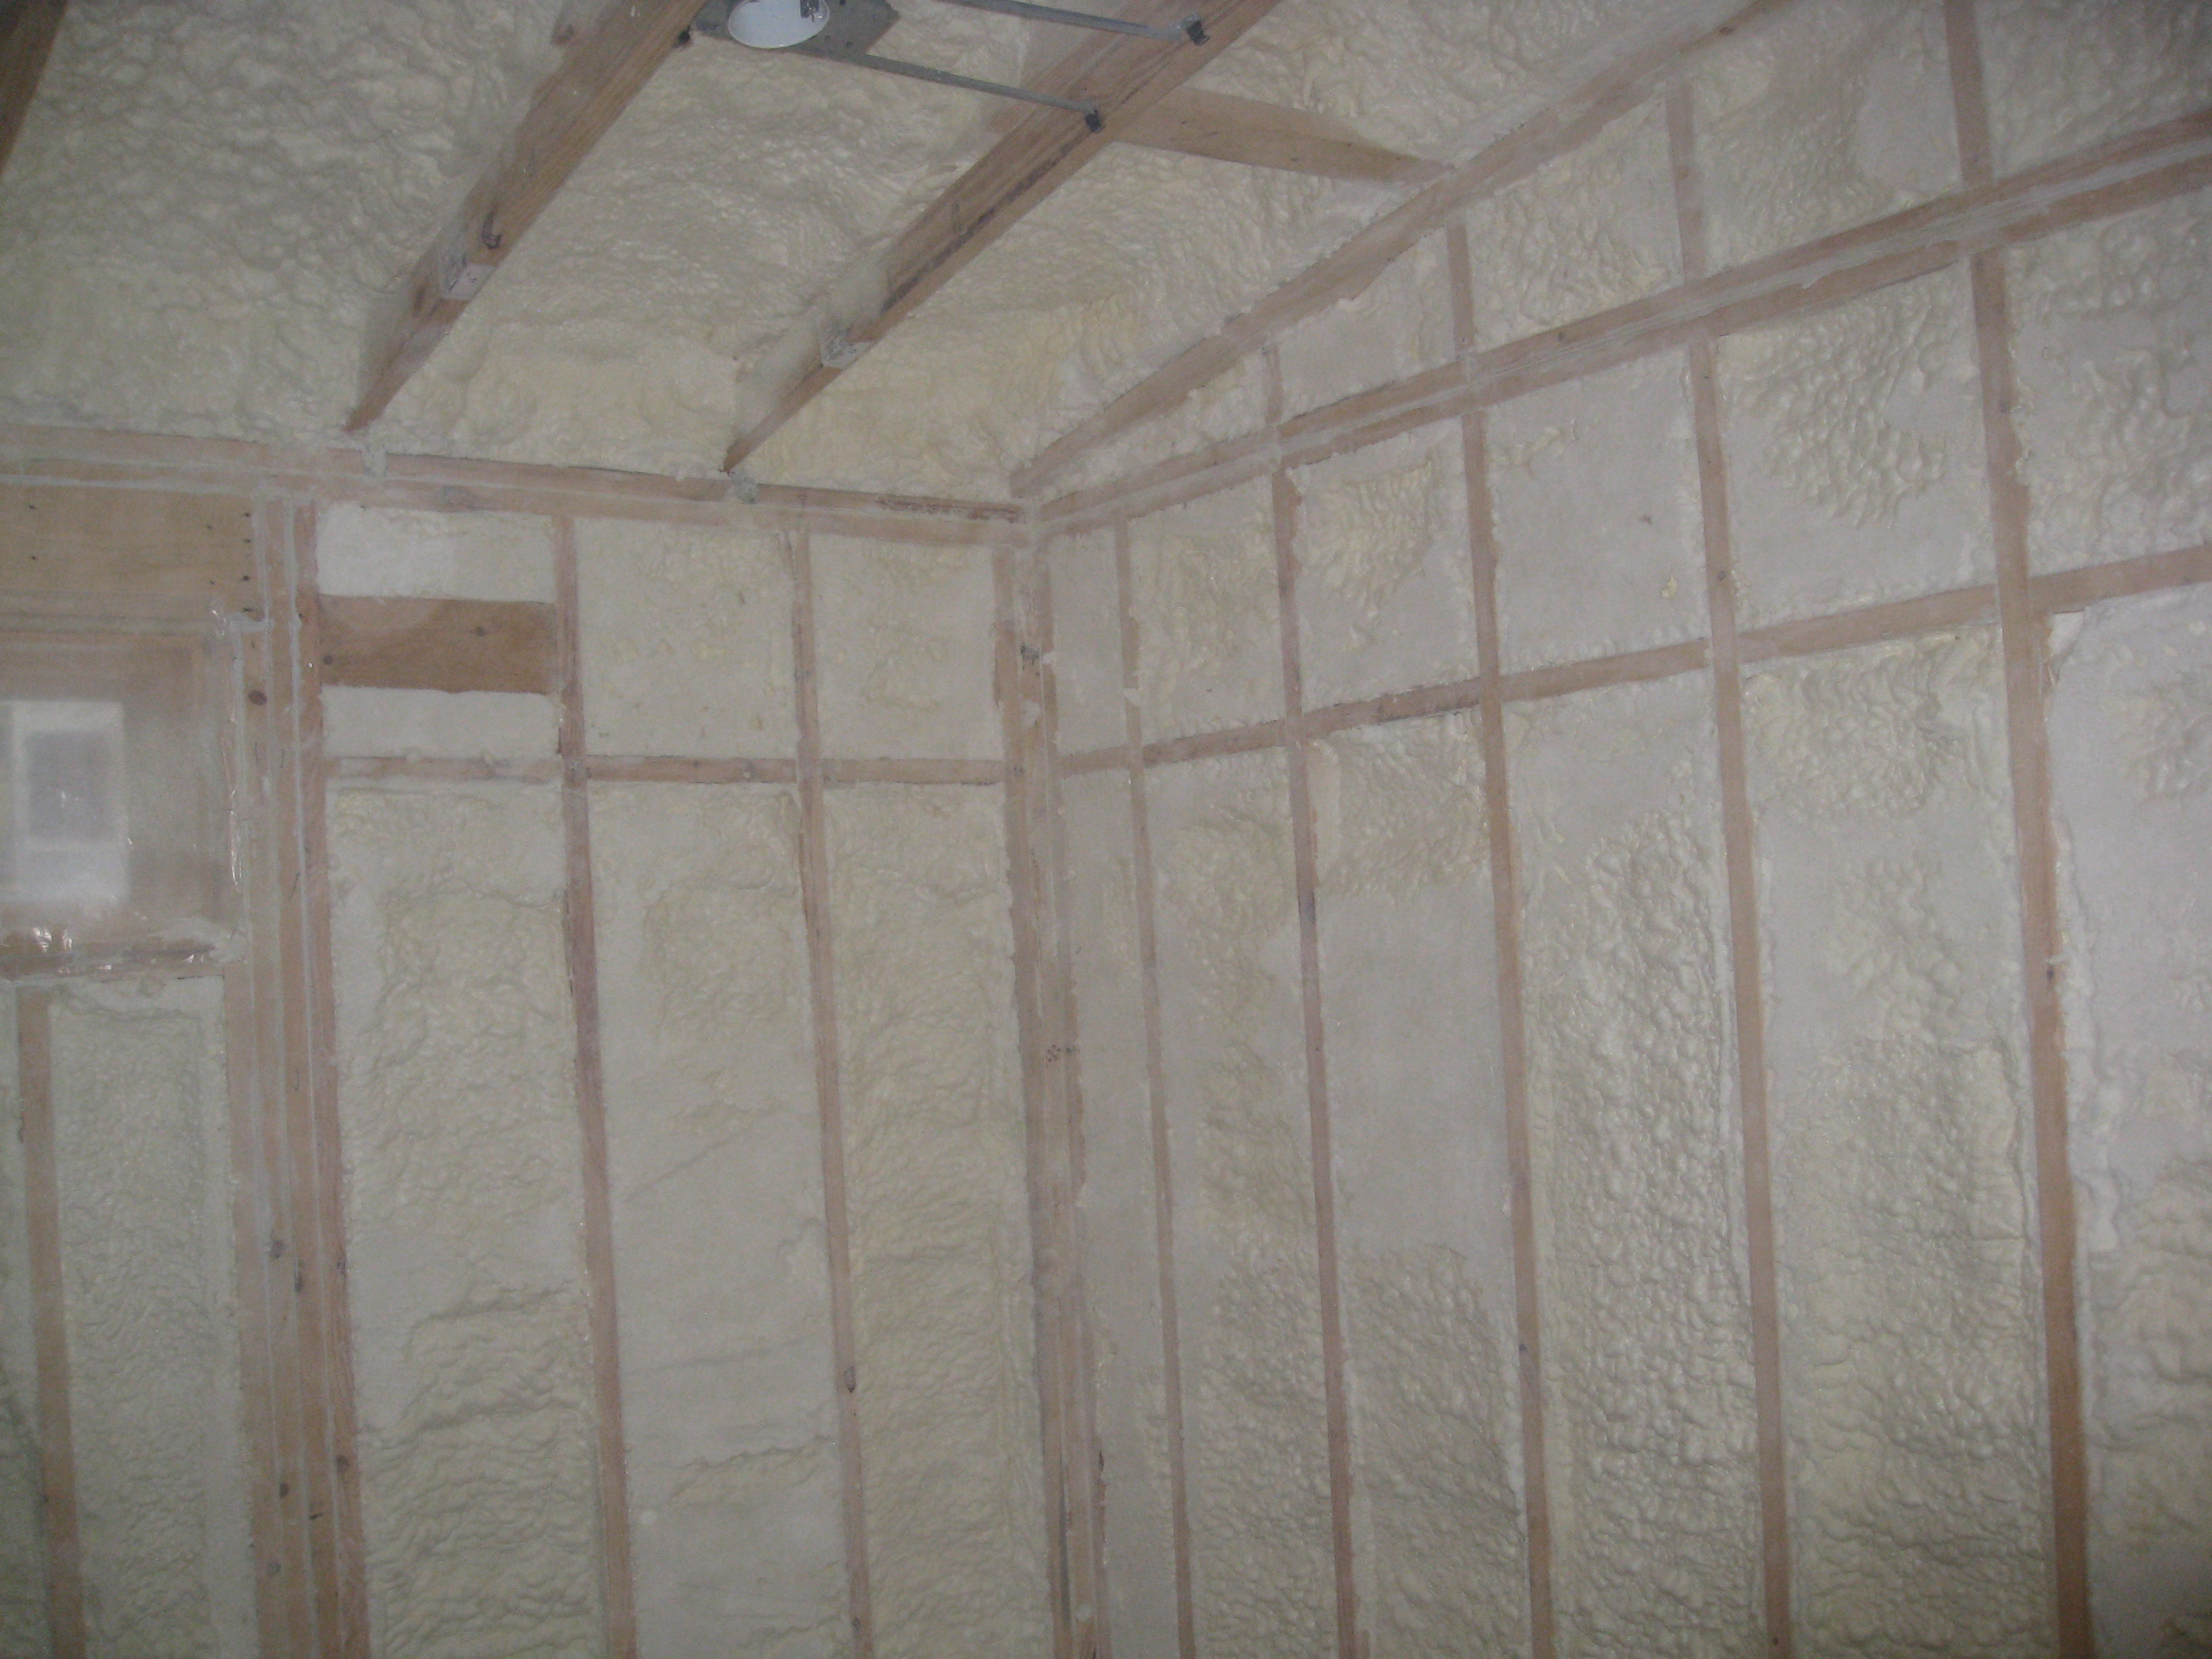 Insulation Installation Achieves Resnet Grade 1 Building